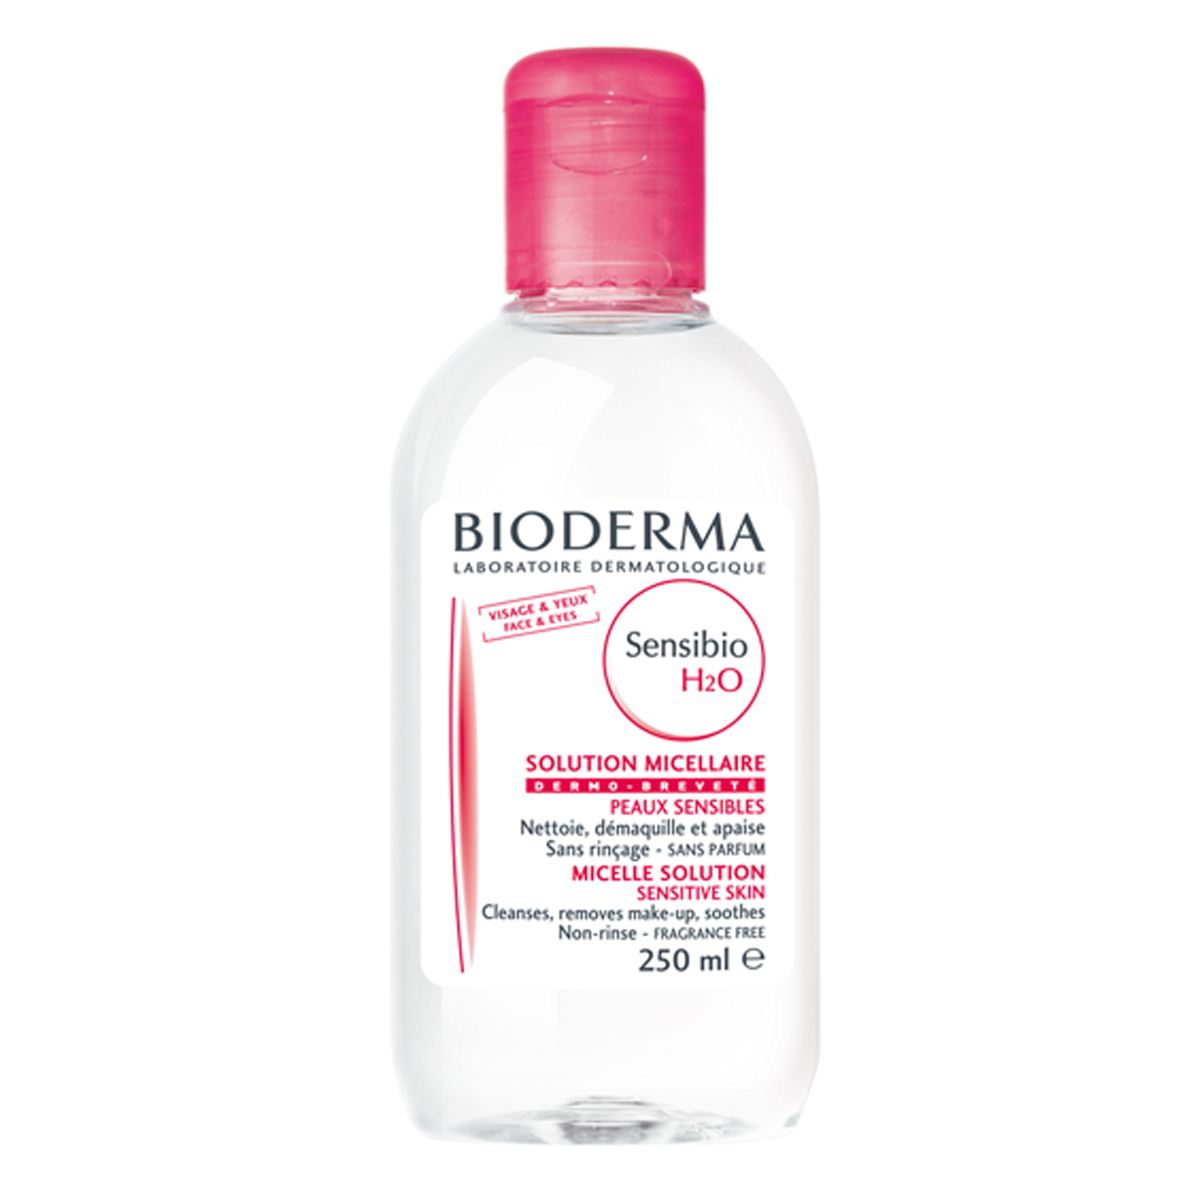 Bioderma Sensibio H20 (250ml)